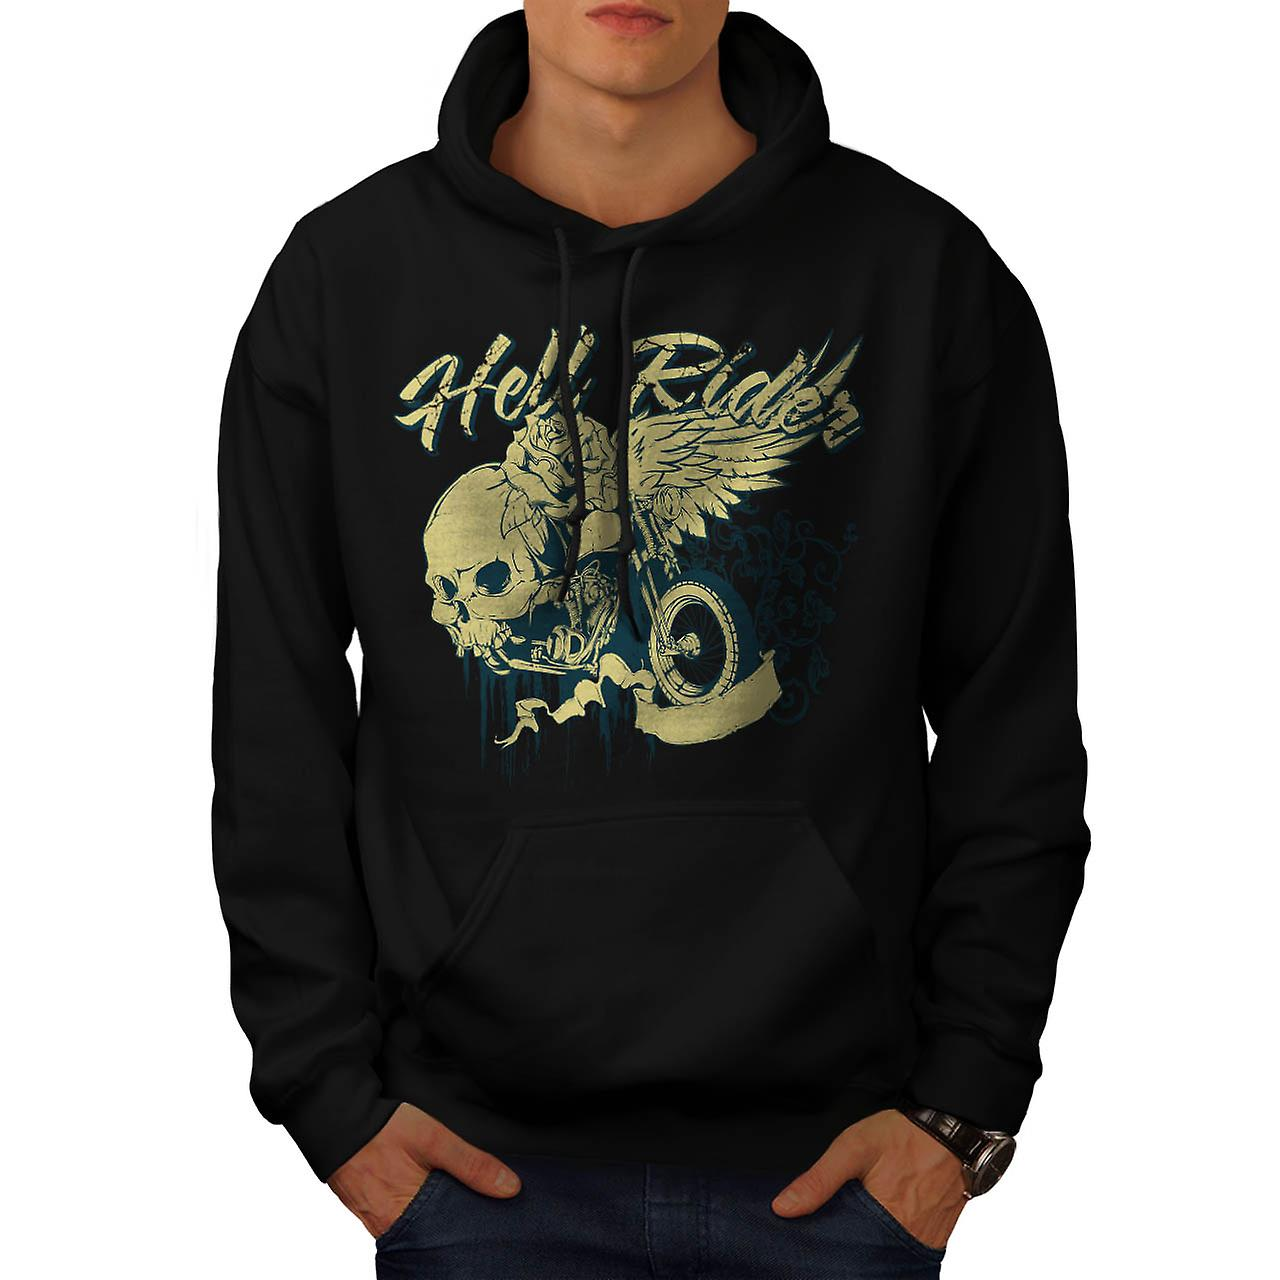 Hell Rider Biker Life Rose Skull Men Black Hoodie | Wellcoda